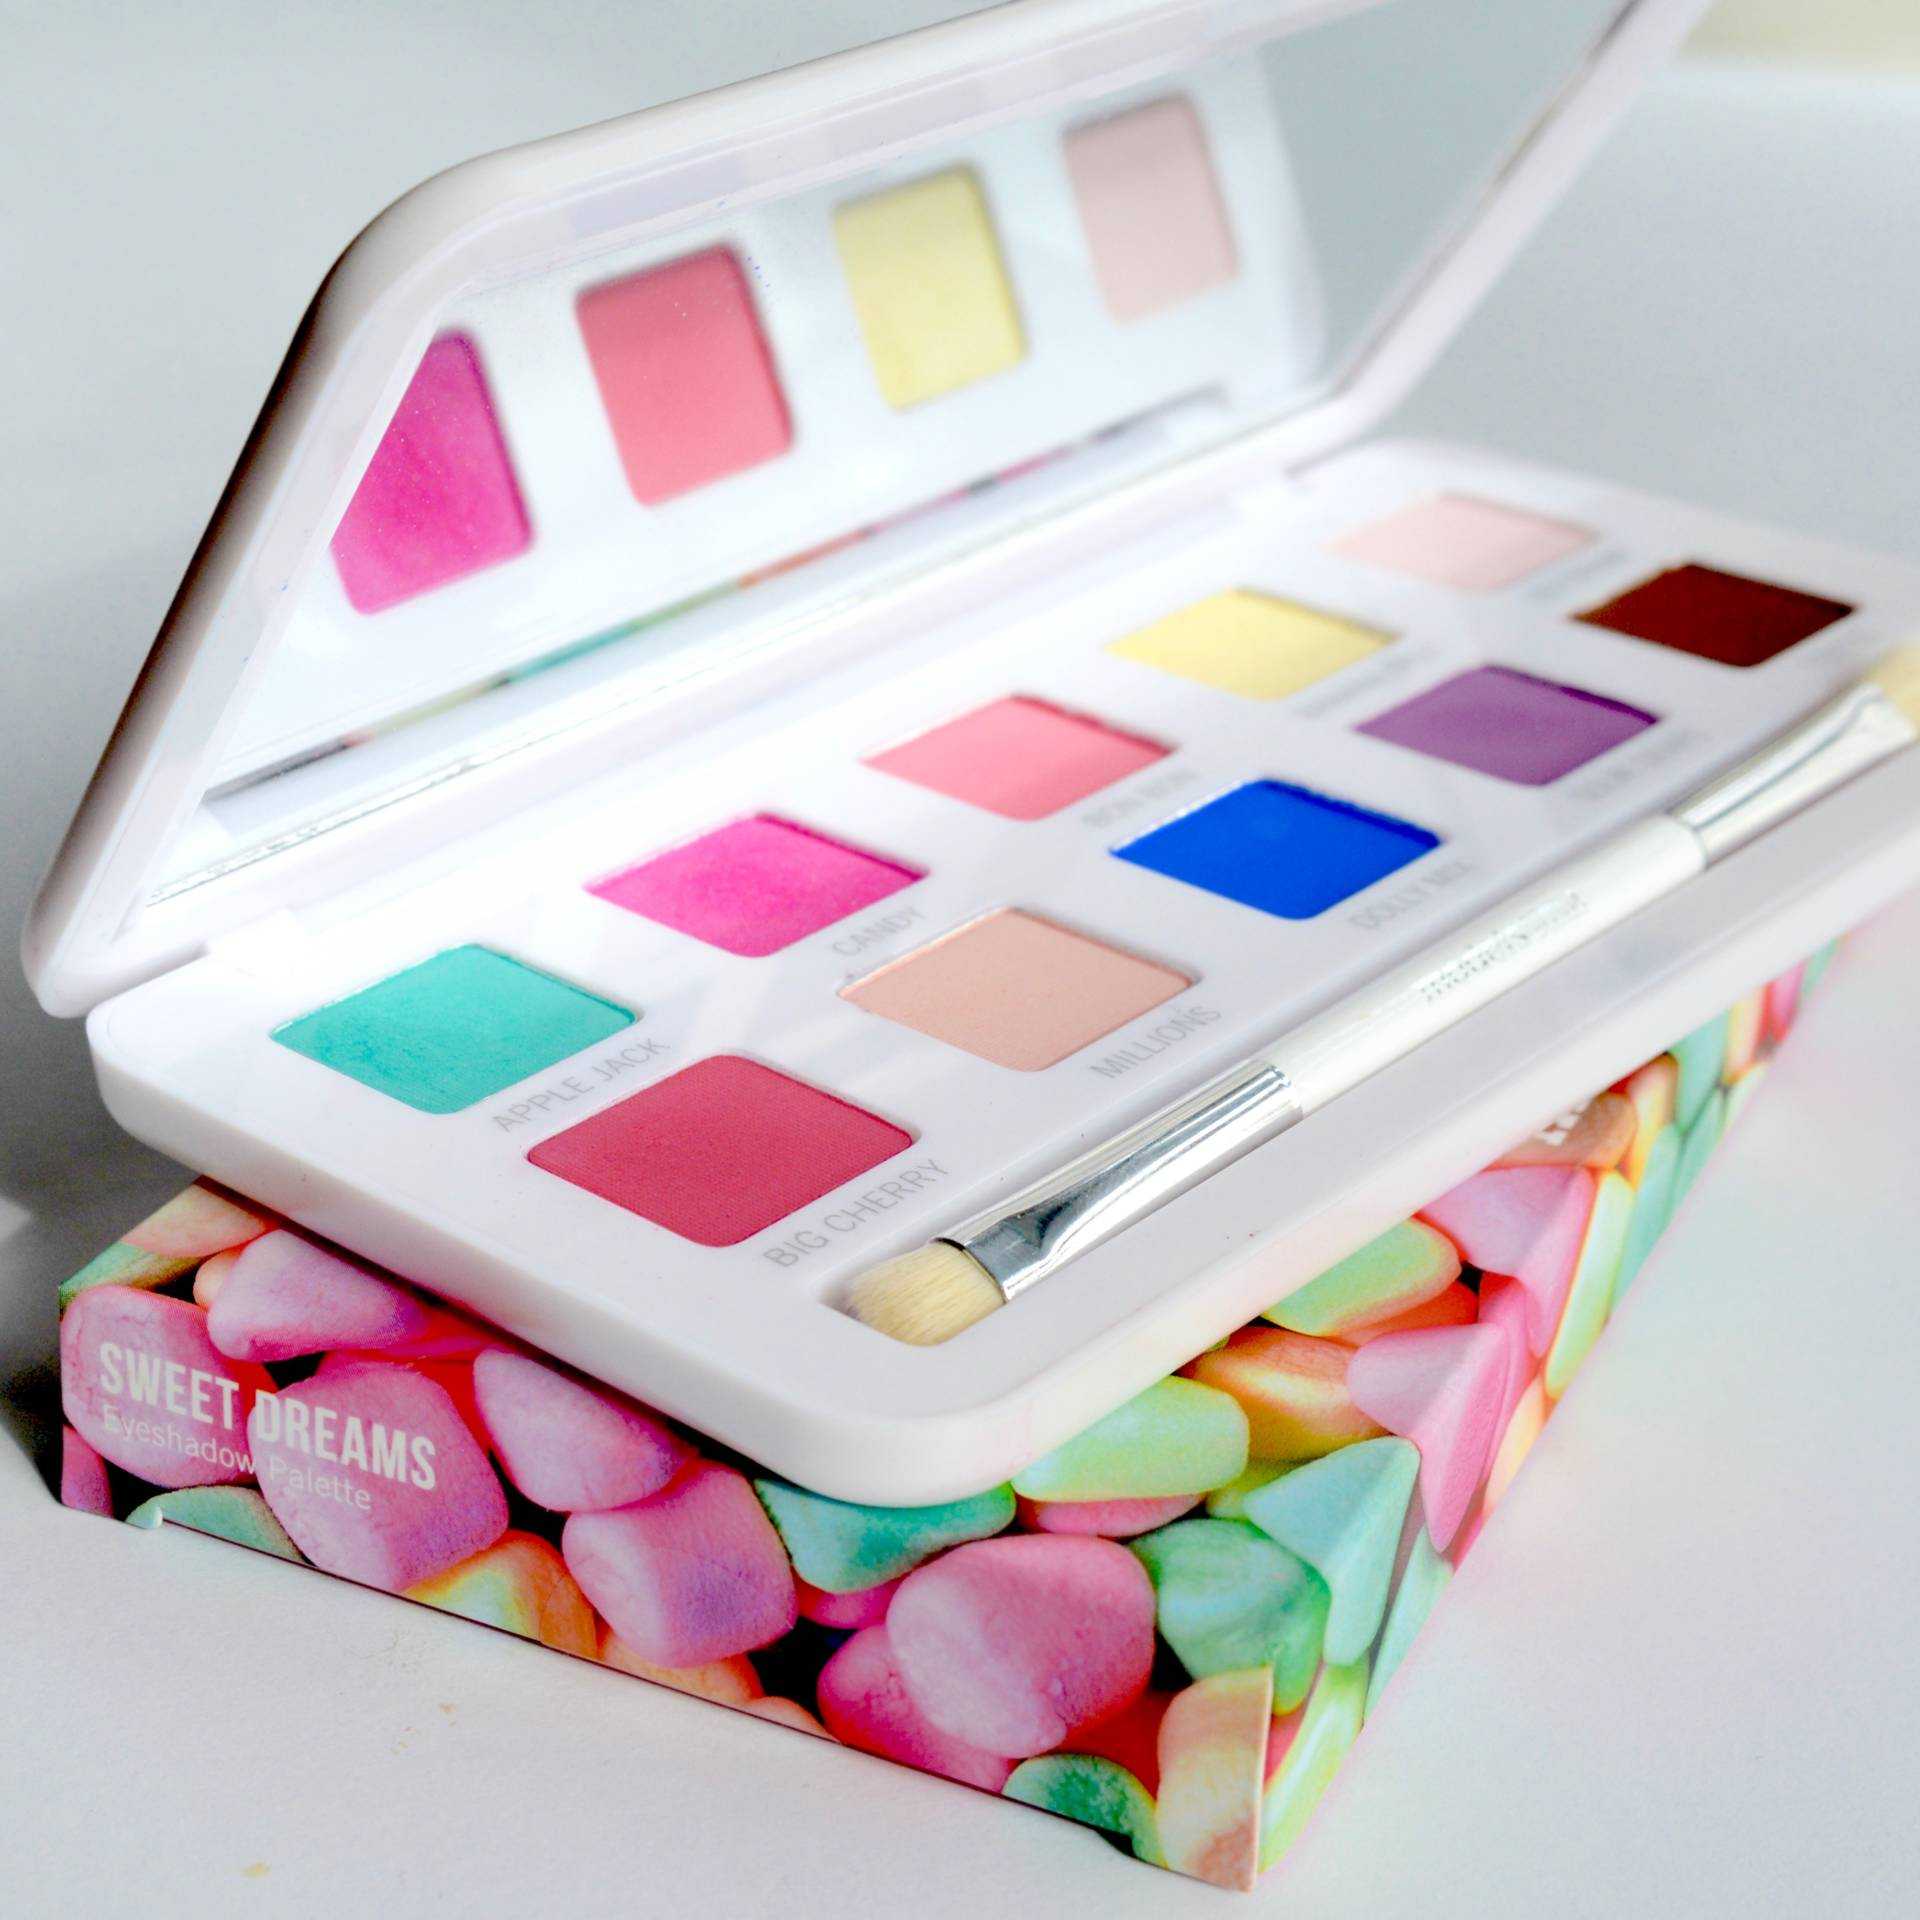 Friday Faves: Models Own Sweet Dreams palette. Pastel eye make up is so pretty for spring!